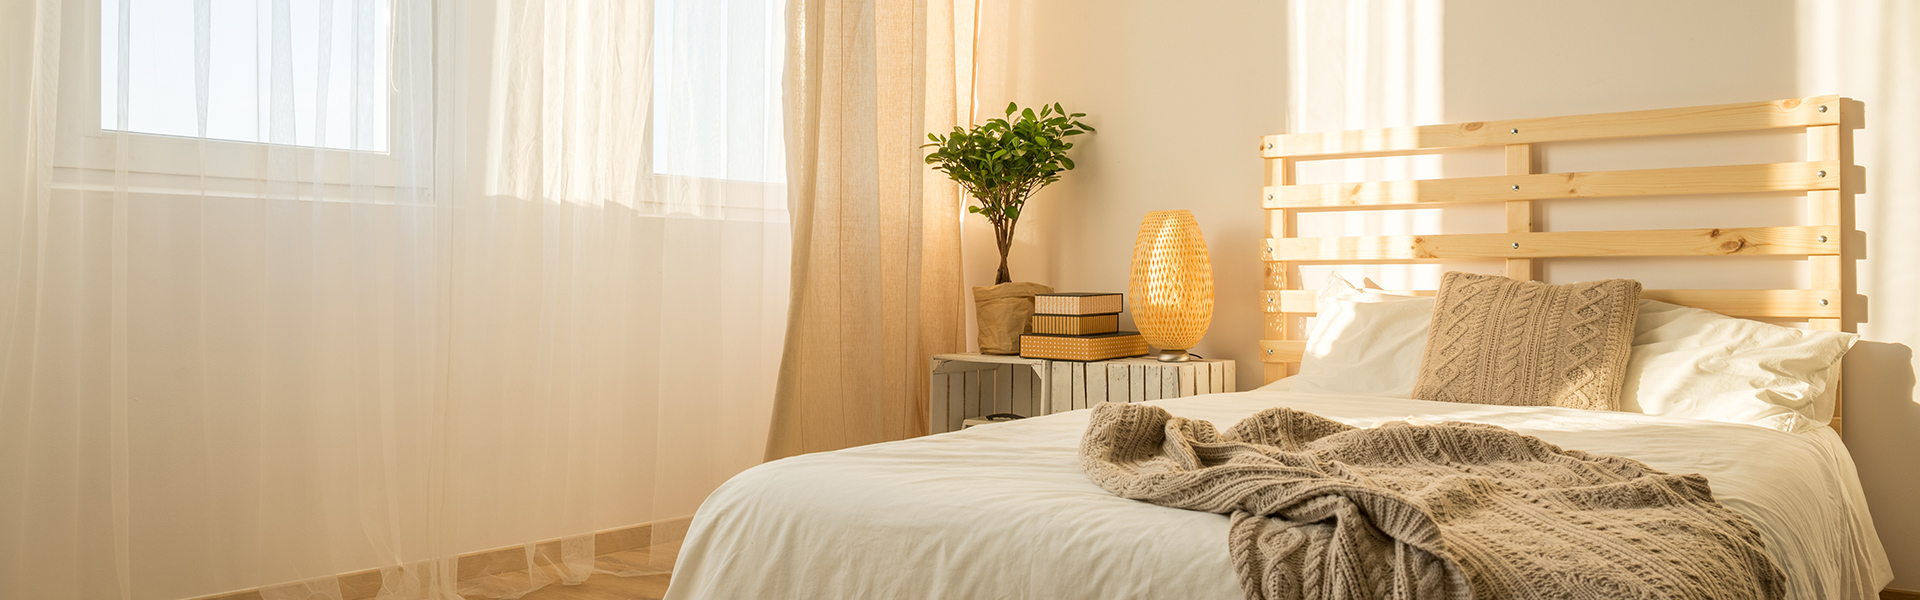 #SummerSnooze: Making Your Bedroom Summer Ready